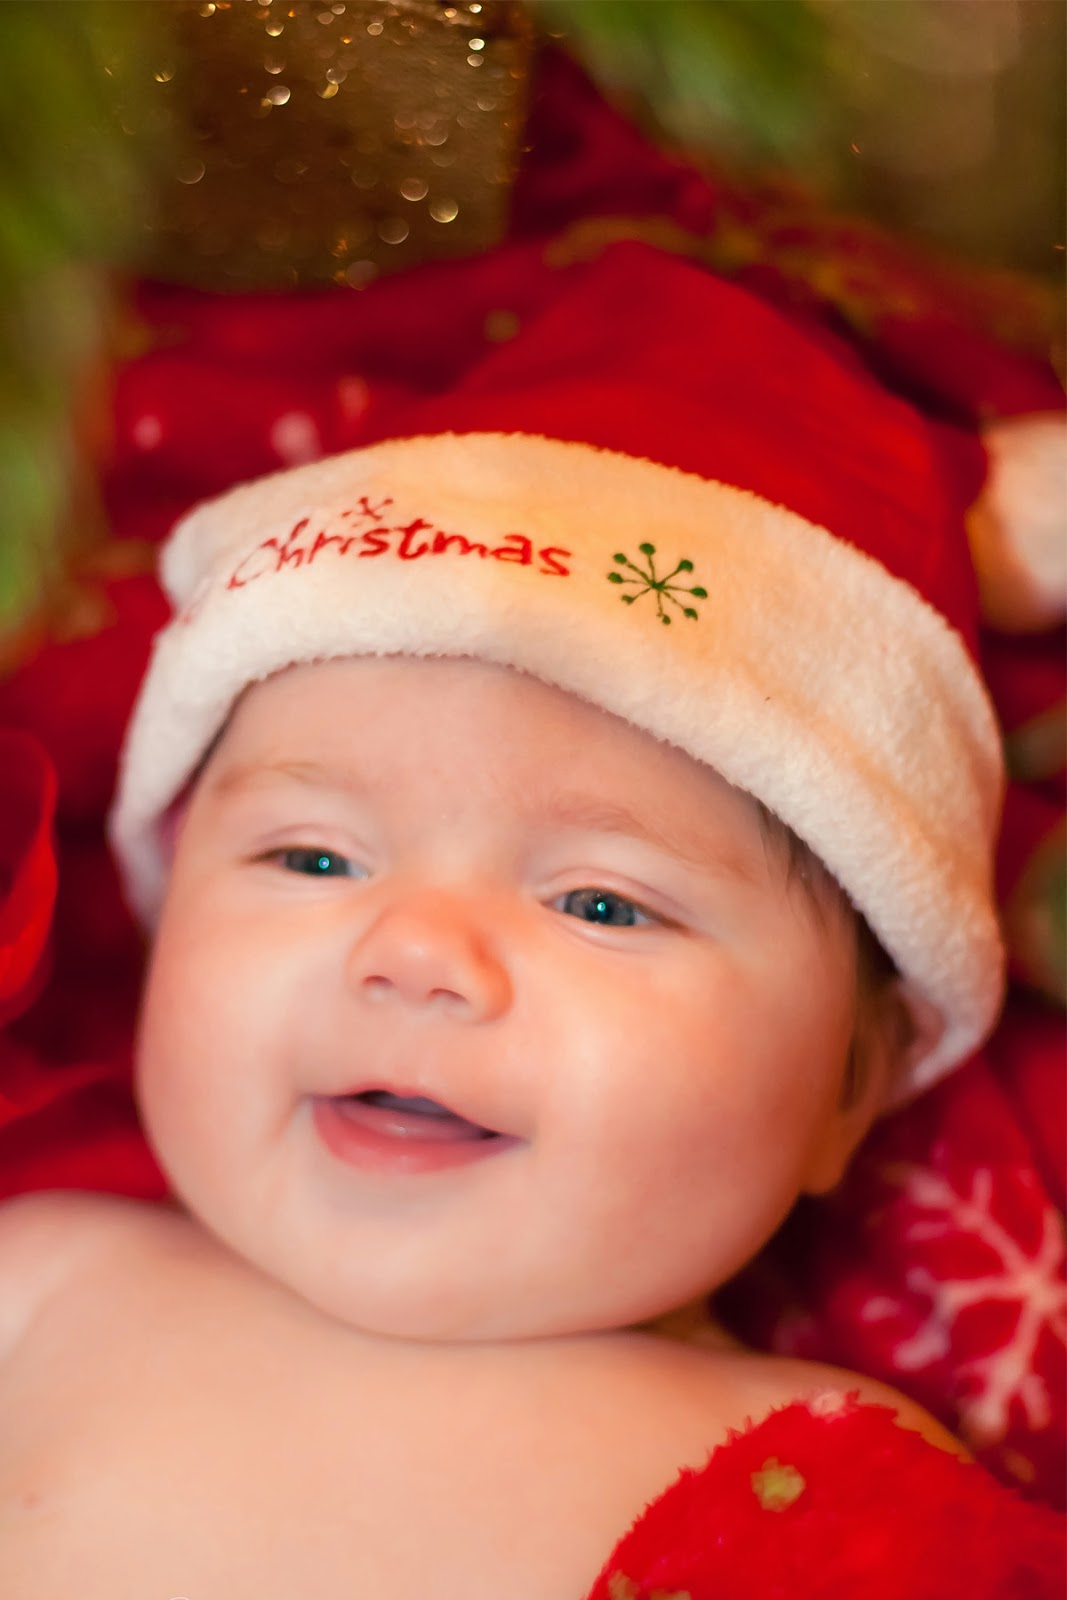 Cute Chinese Babies Wallpapers Christmas Babies Hd Wallpapers Hd Wallpapers High